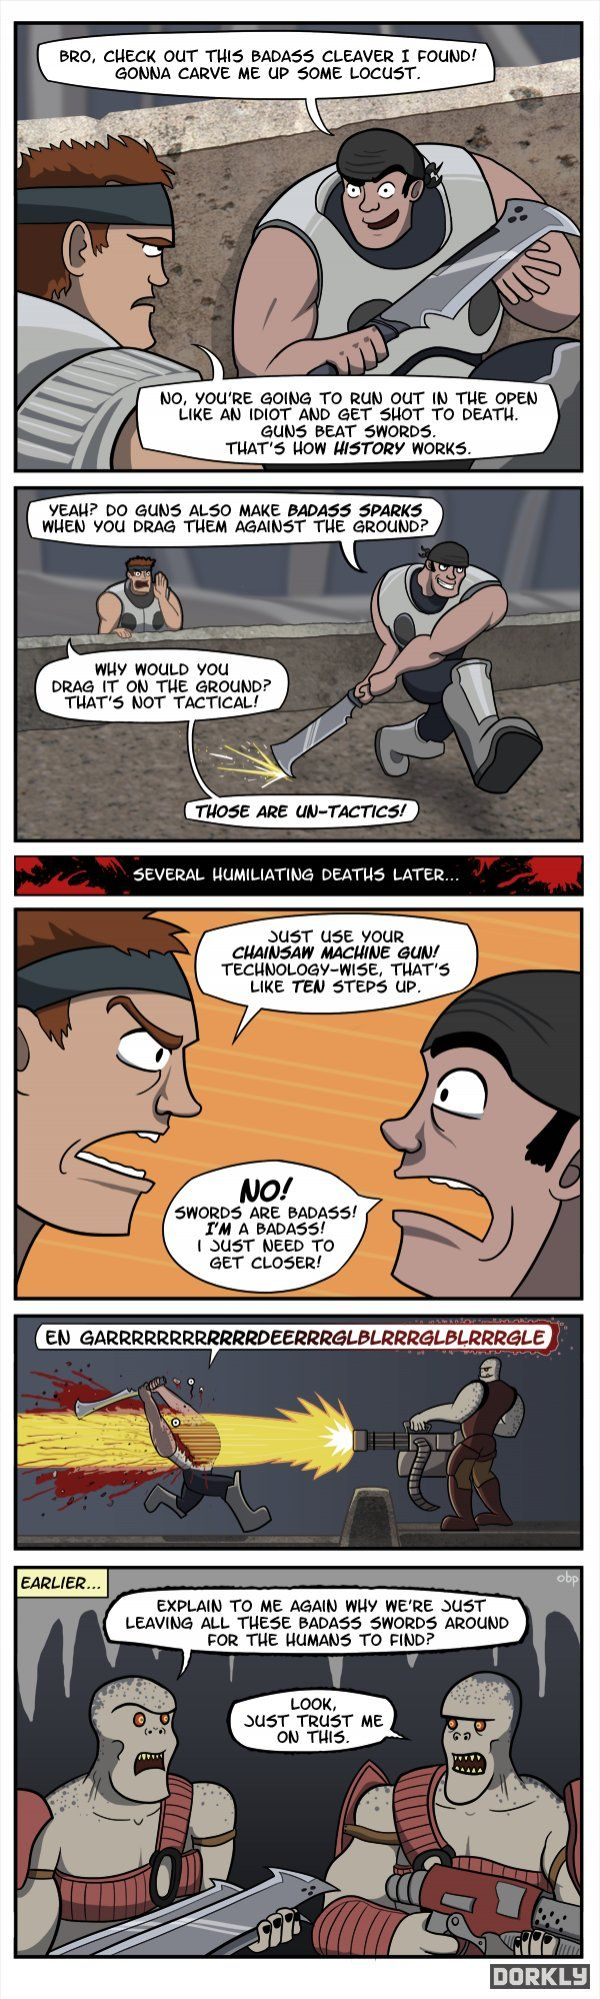 The Problem with Swords in Gears of War 3 - Dorkly Comic